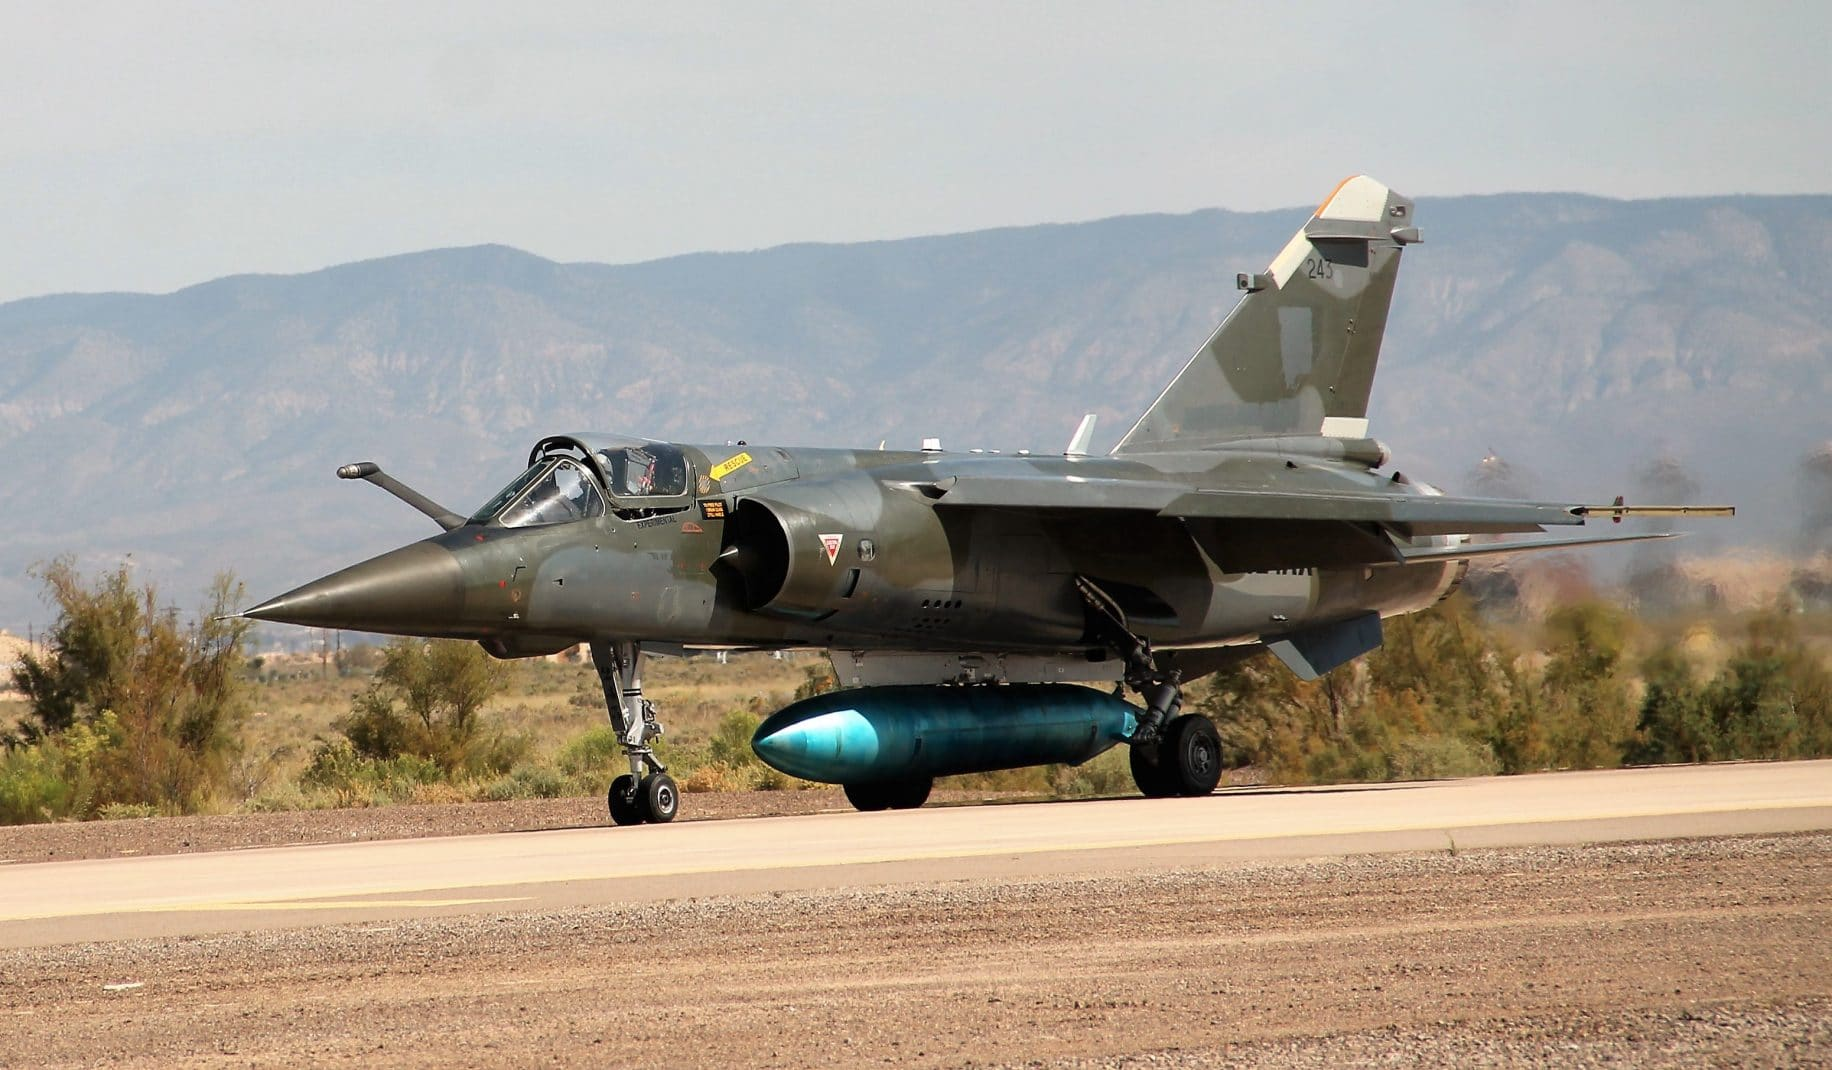 Pics: Holloman Air Force Base welcomes four Mirage F-1s